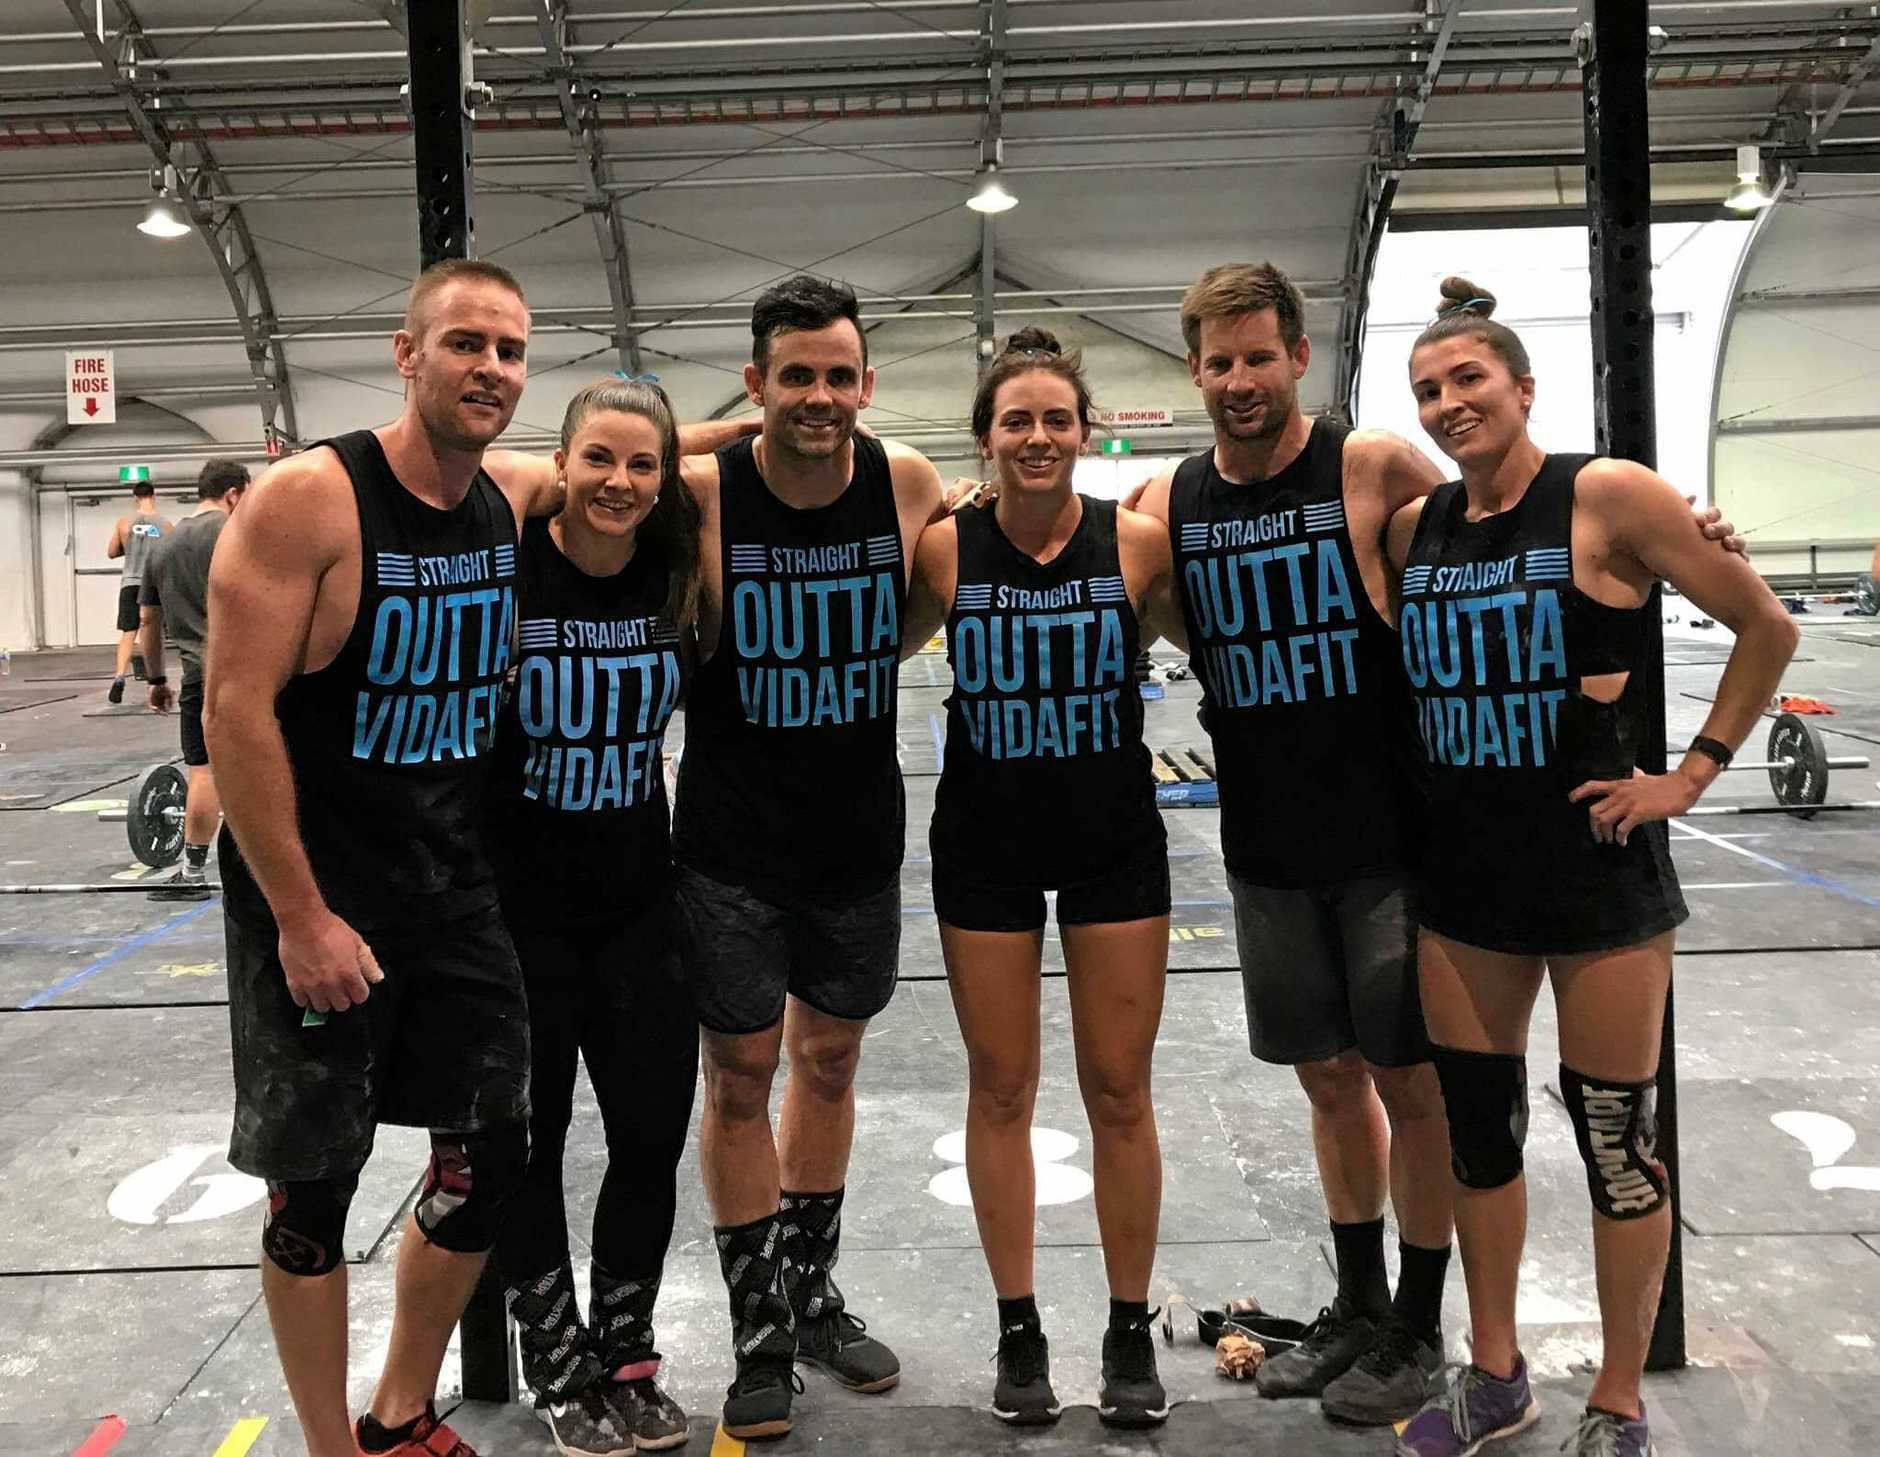 The VidaFit Rockhampton team (from left) Dan Stevens, Megan Hawley, Dan Withers, Madi Minns, Jason Larcombe and Courtney Williams finished sixth at the national finals at the weekend.